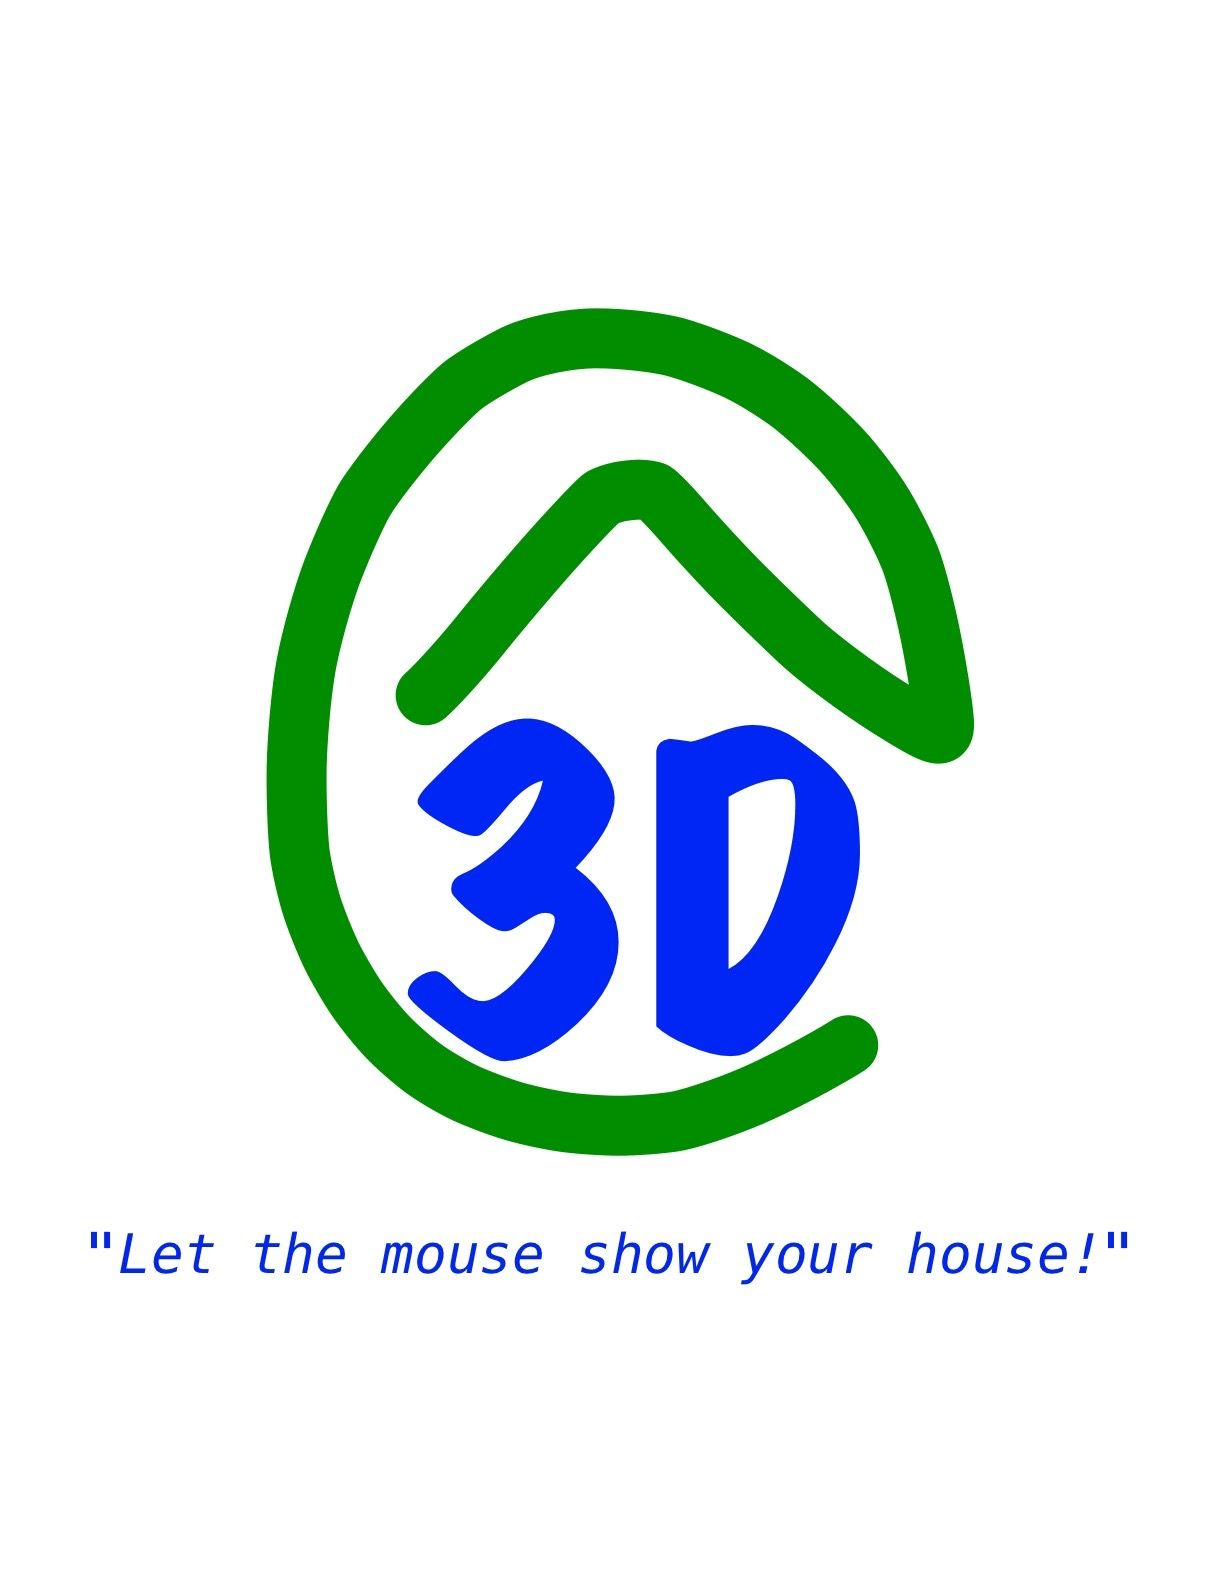 Our 3D service will allow clients to move through a home